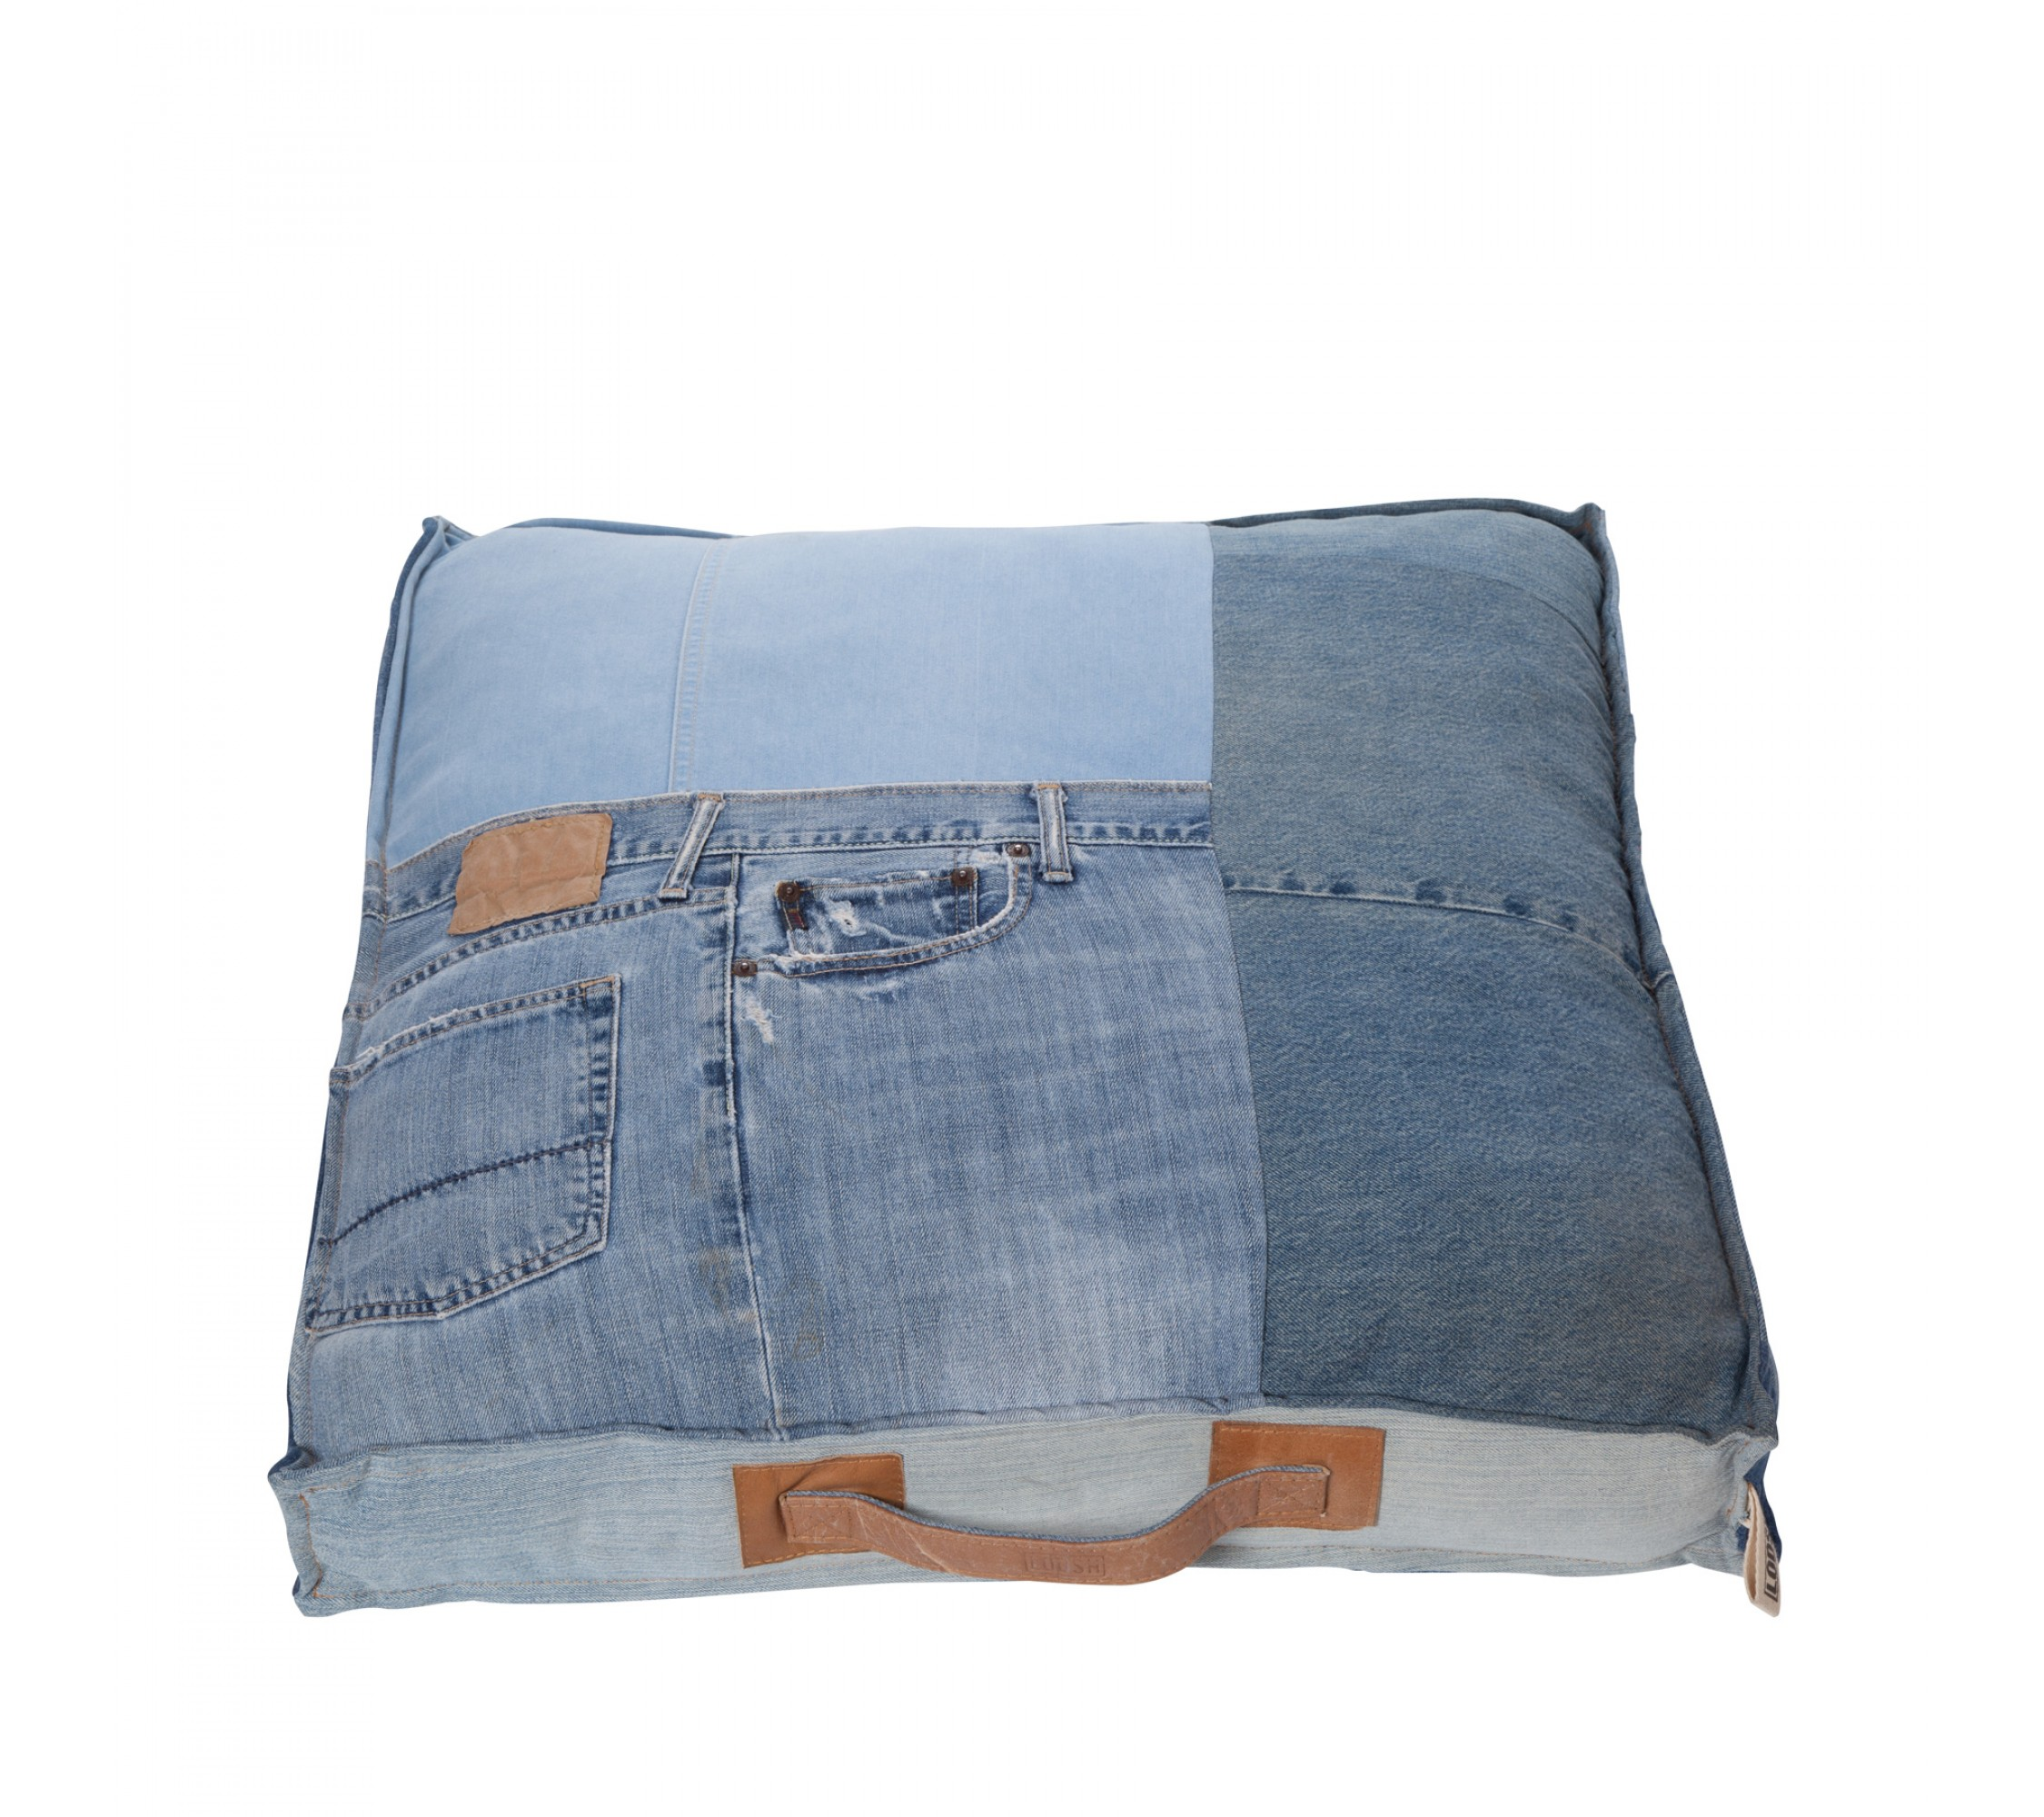 Sitzkissen Jeans - Cushion Denim